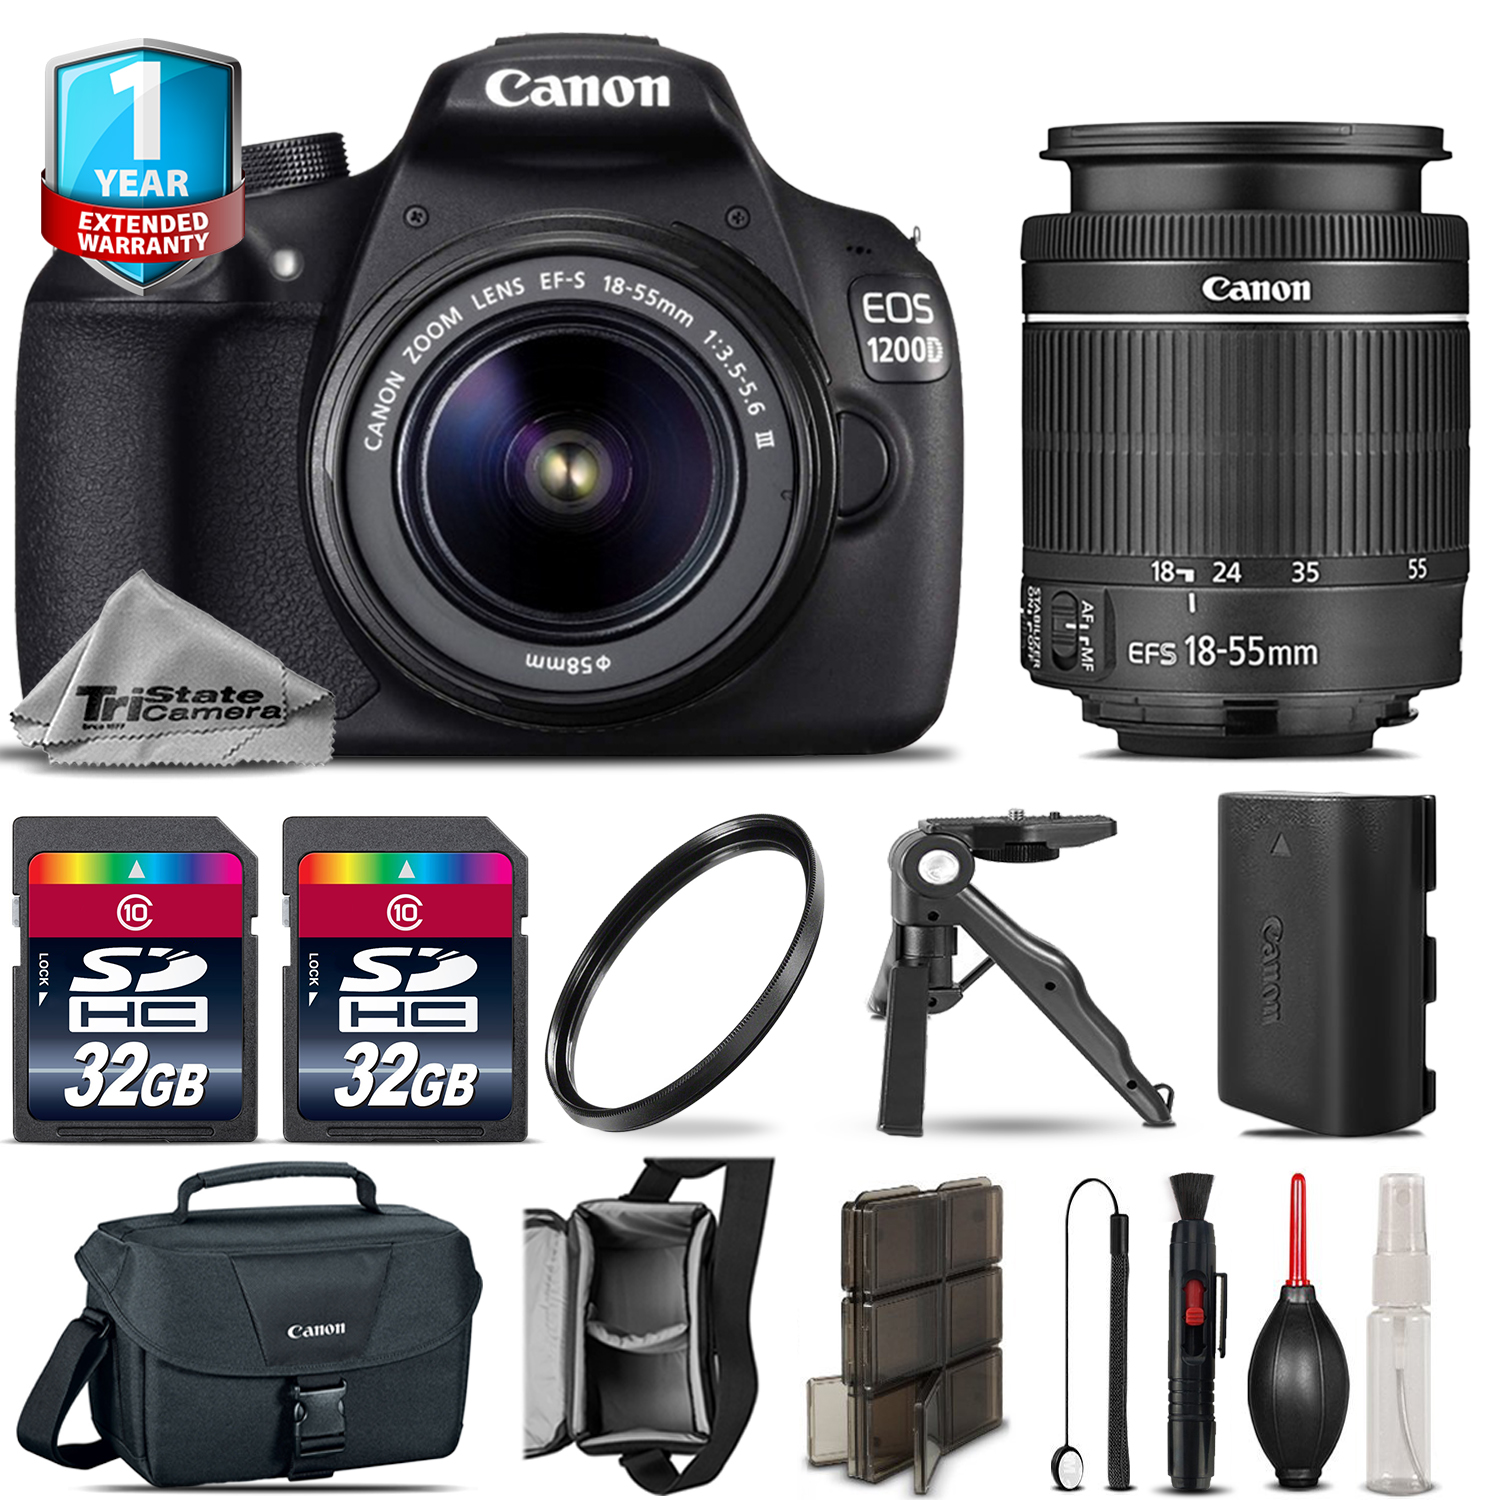 EOS Rebel 1200D Camera + 18-55mm DC + 1yr Warranty + Canon Case -64GB Kit *FREE SHIPPING*